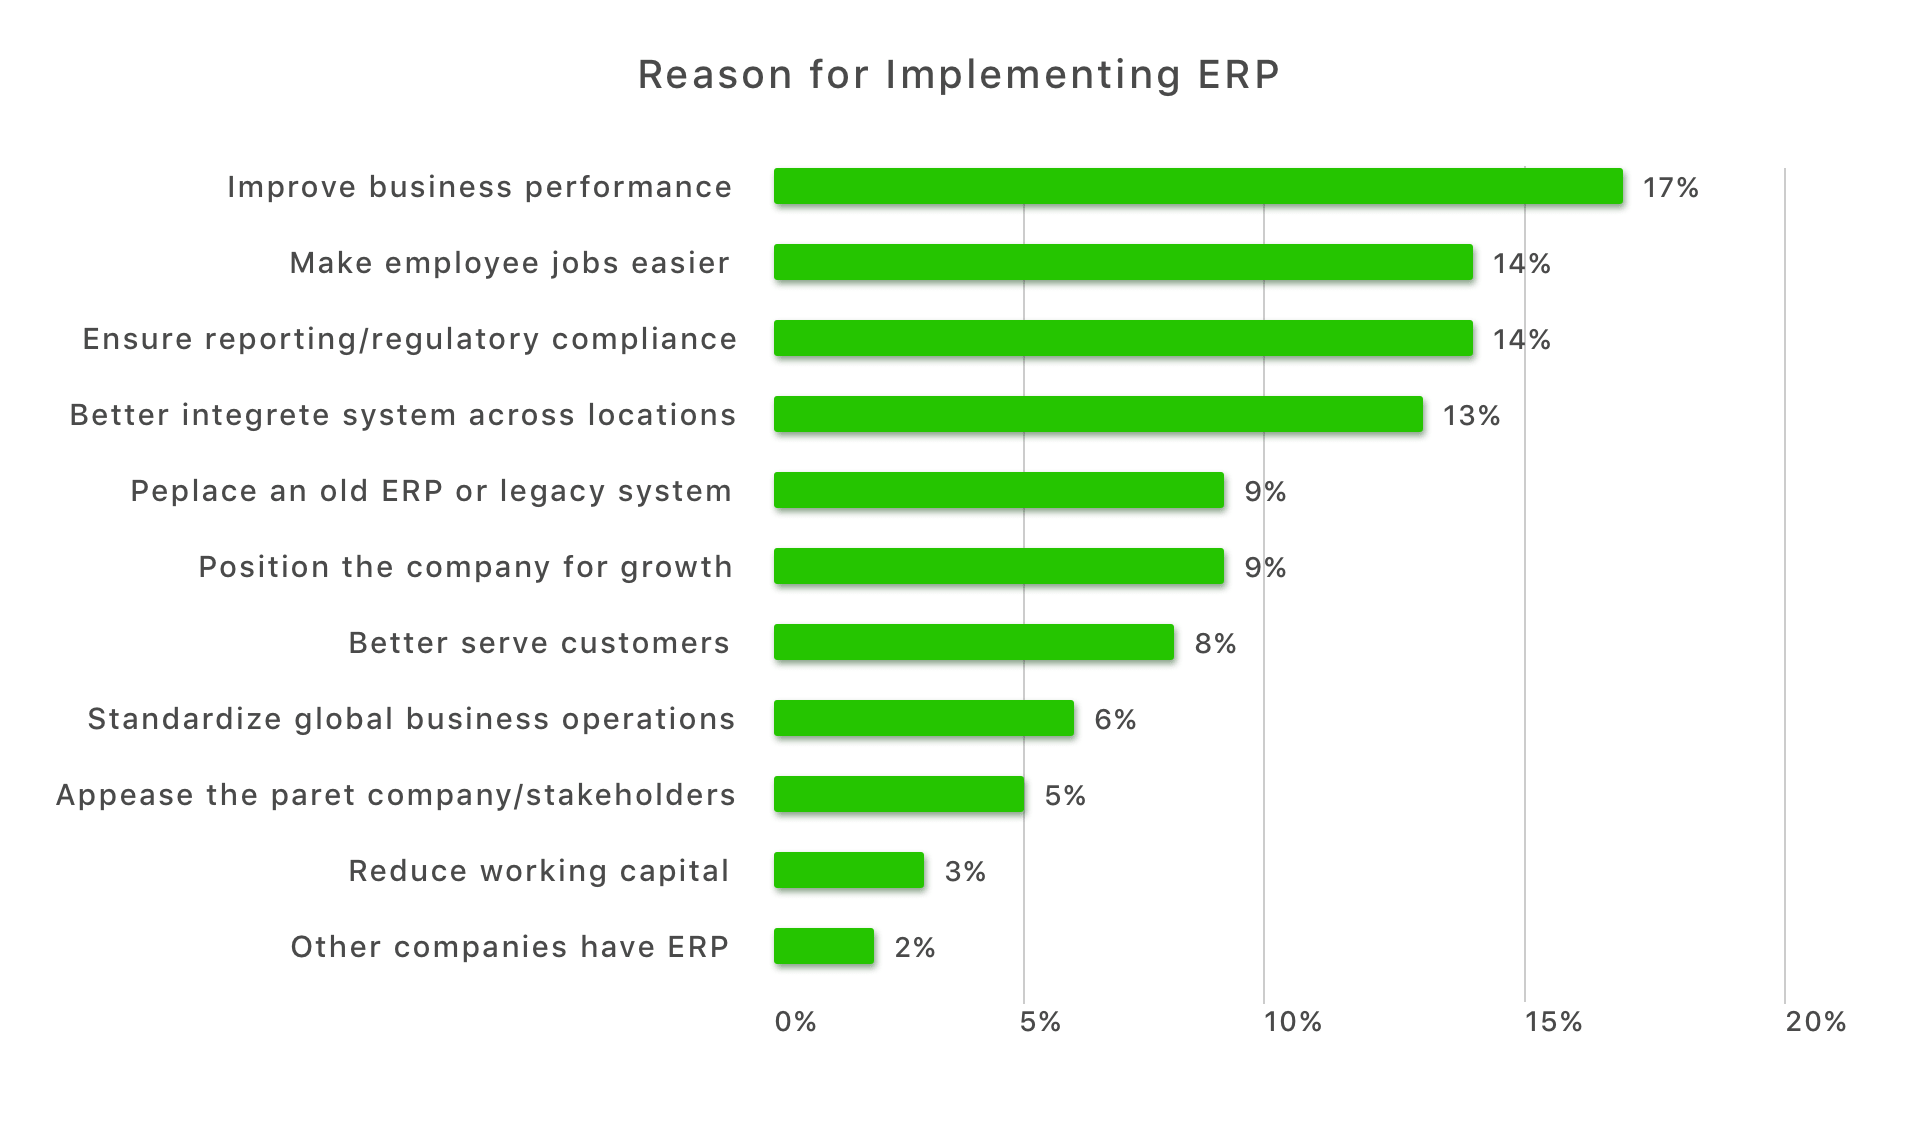 reasons for implementing ERP solution